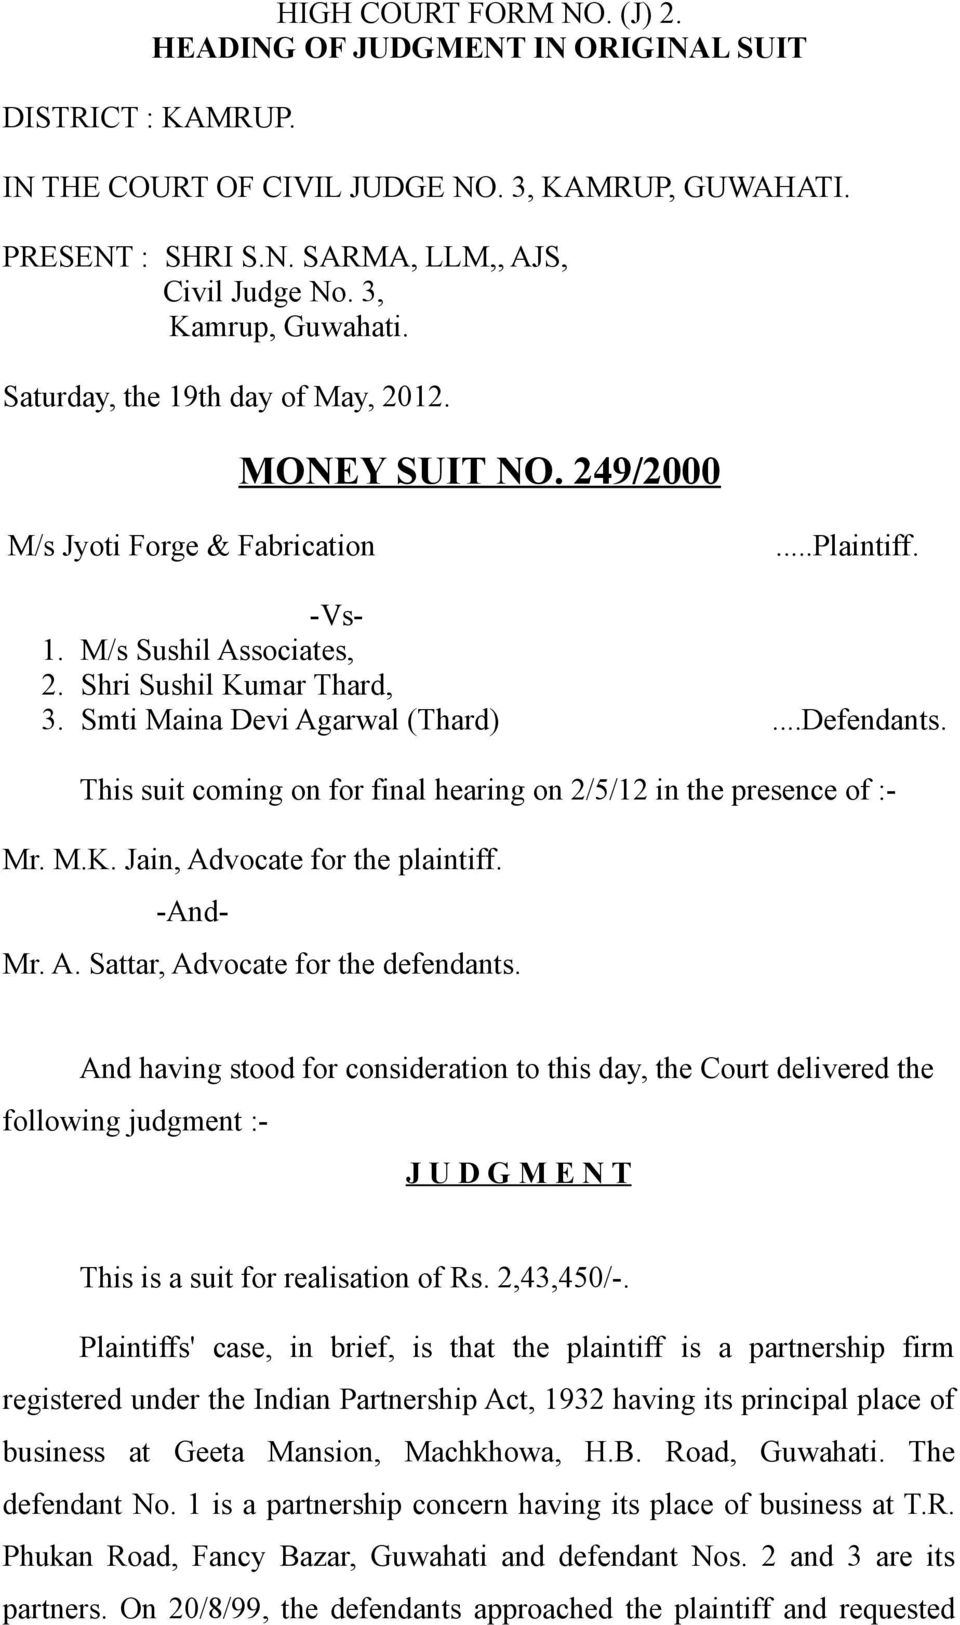 Smti Maina Devi Agarwal (Thard)...Defendants. This suit coming on for final hearing on 2/5/12 in the presence of :- Mr. M.K. Jain, Advocate for the plaintiff. -And- Mr. A. Sattar, Advocate for the defendants.